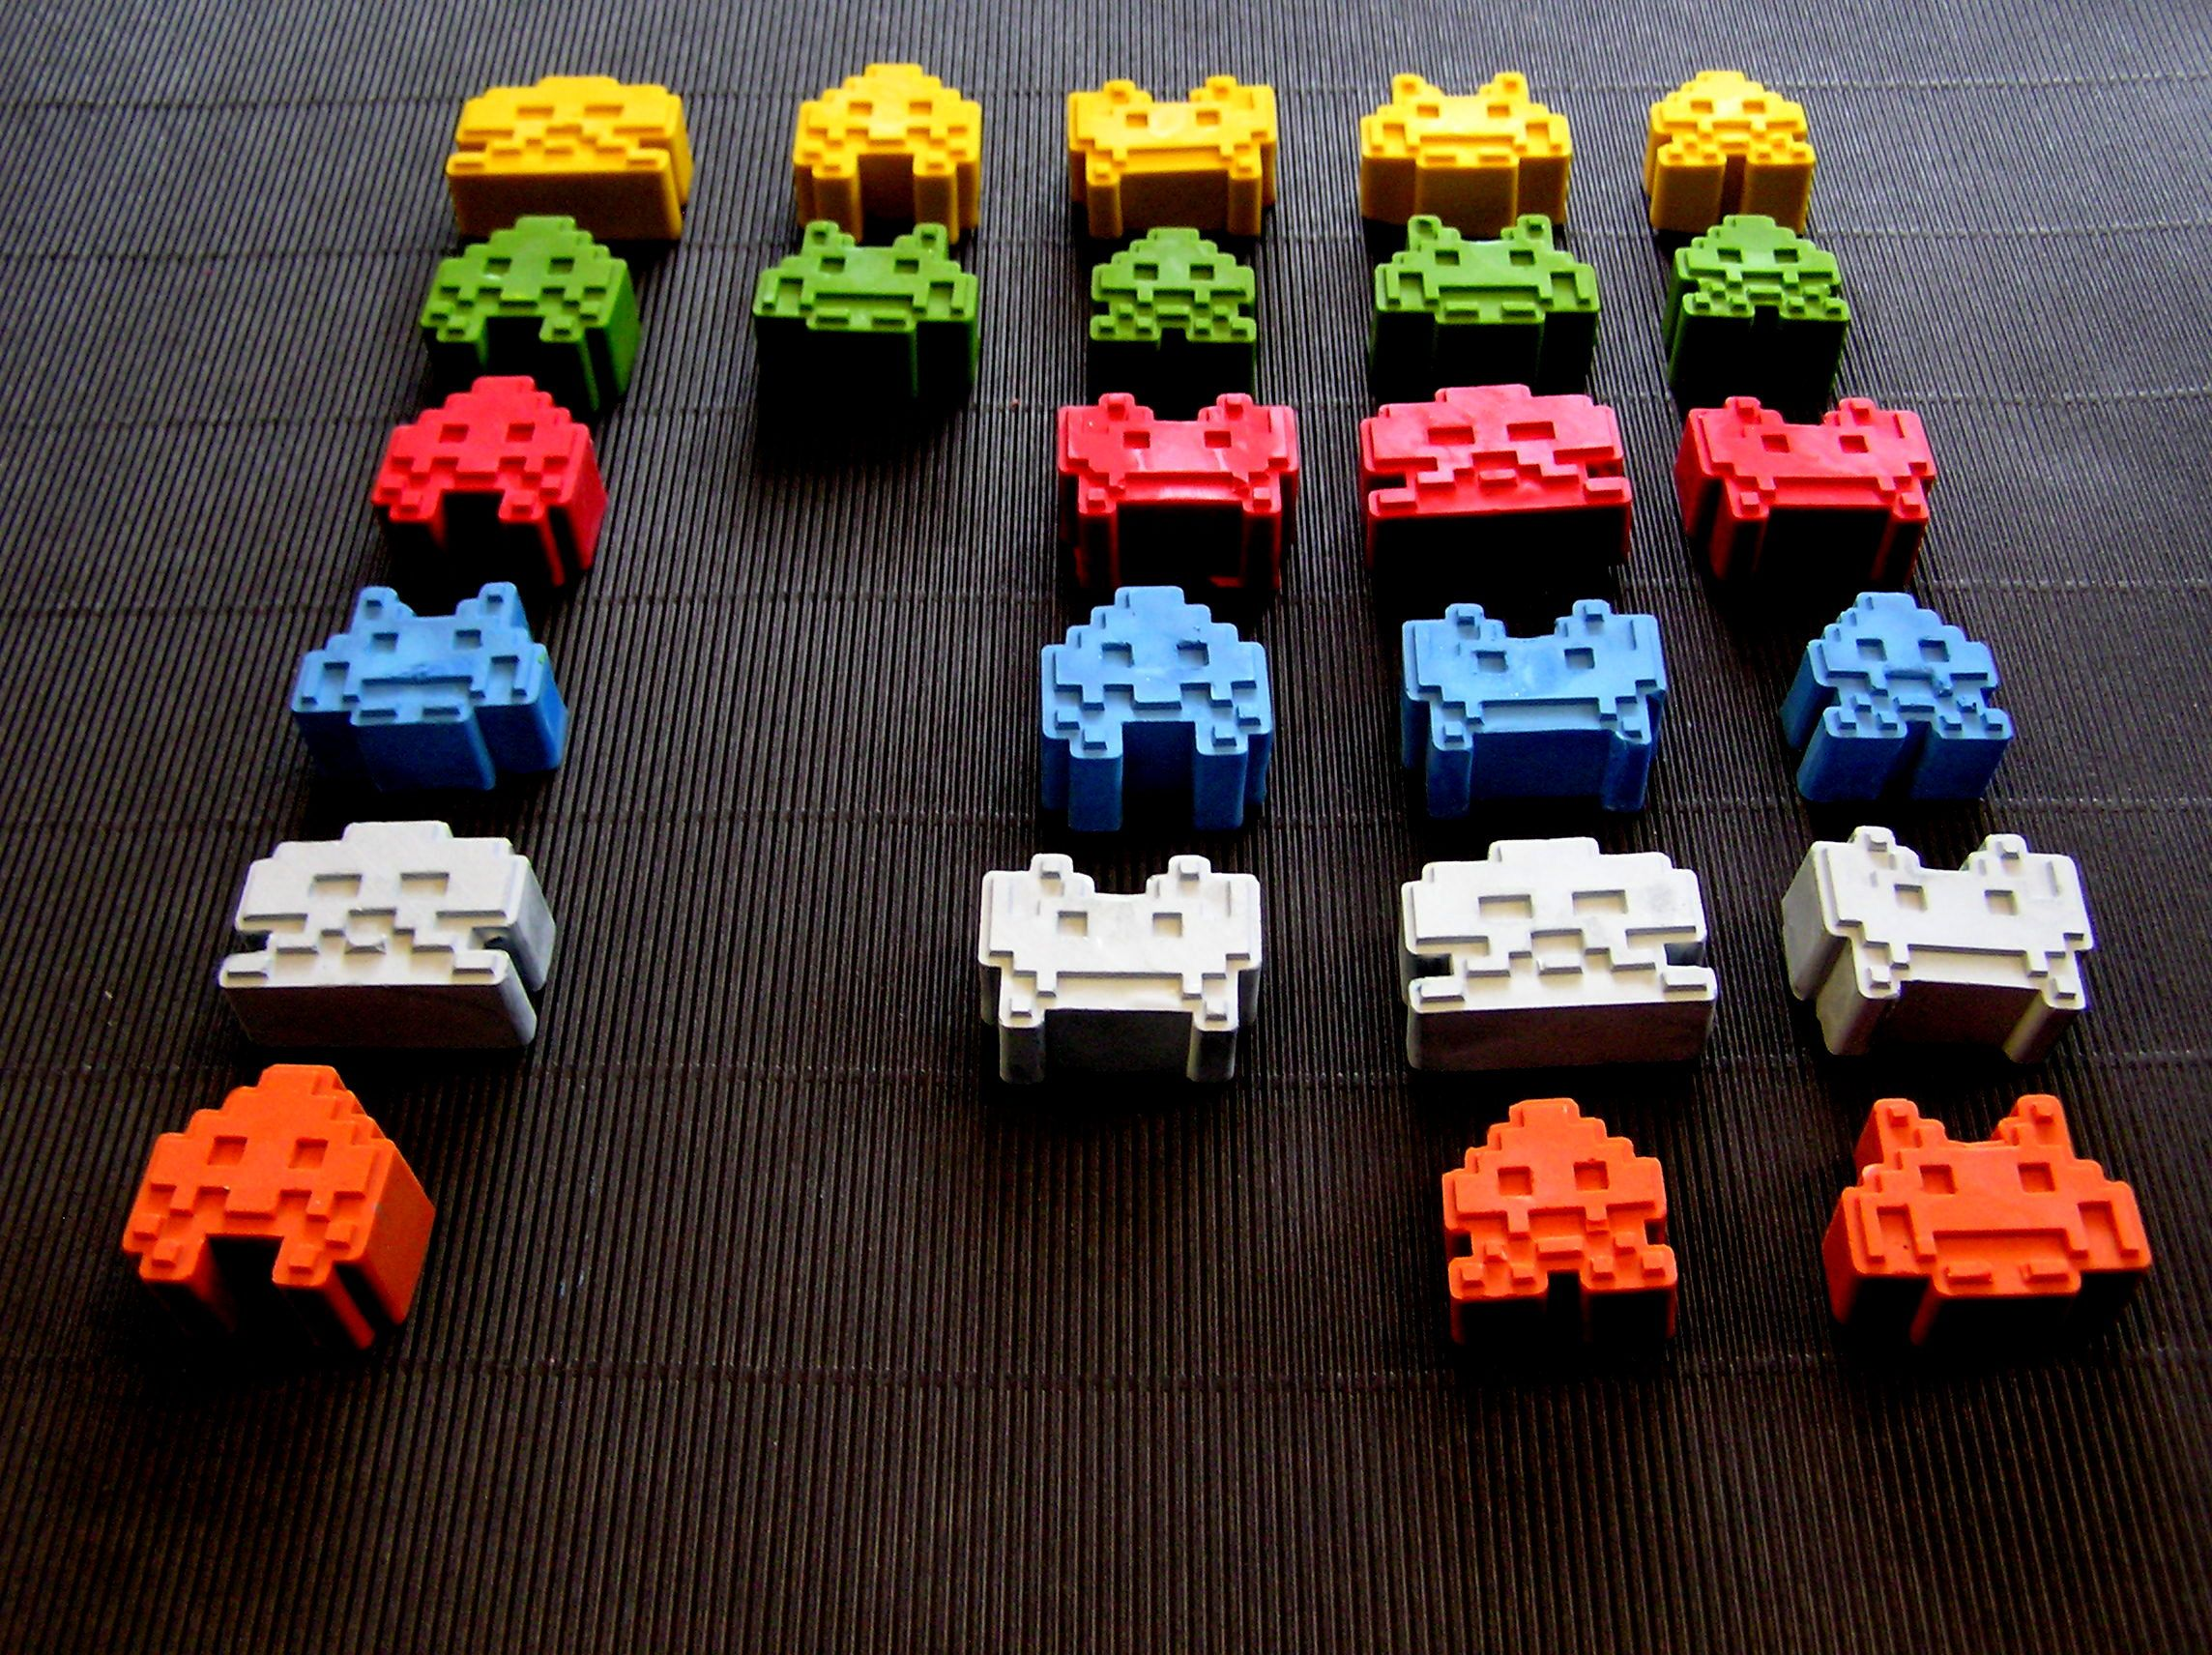 Space Invader crayons from www.felt.co.nz/shop/crazycrayons